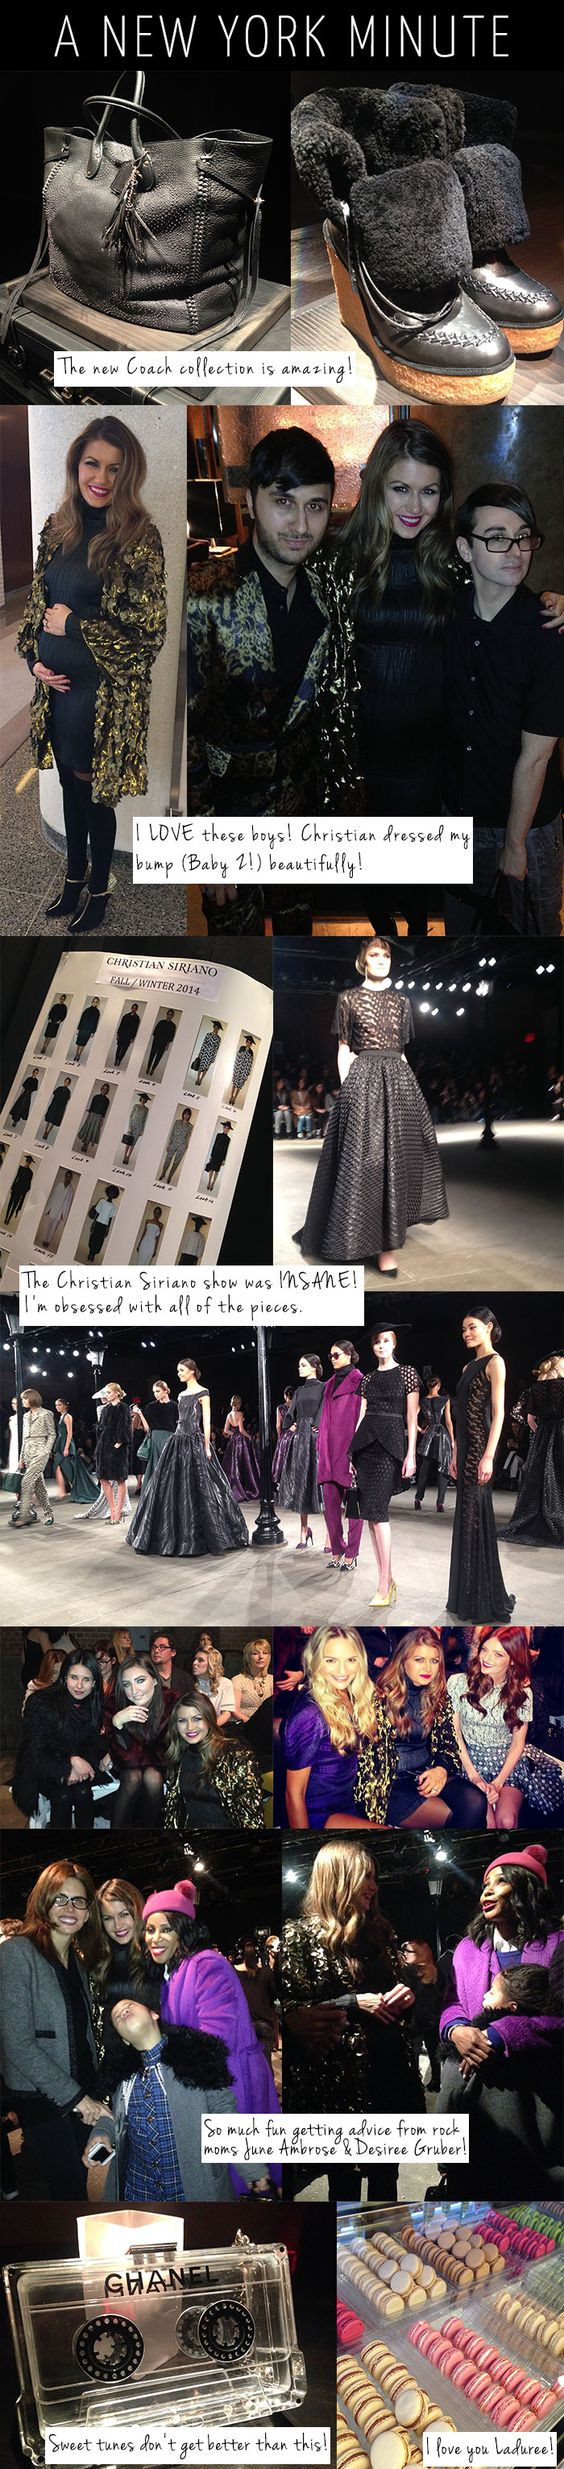 A New York Minute: Weekend Recap #NYFW